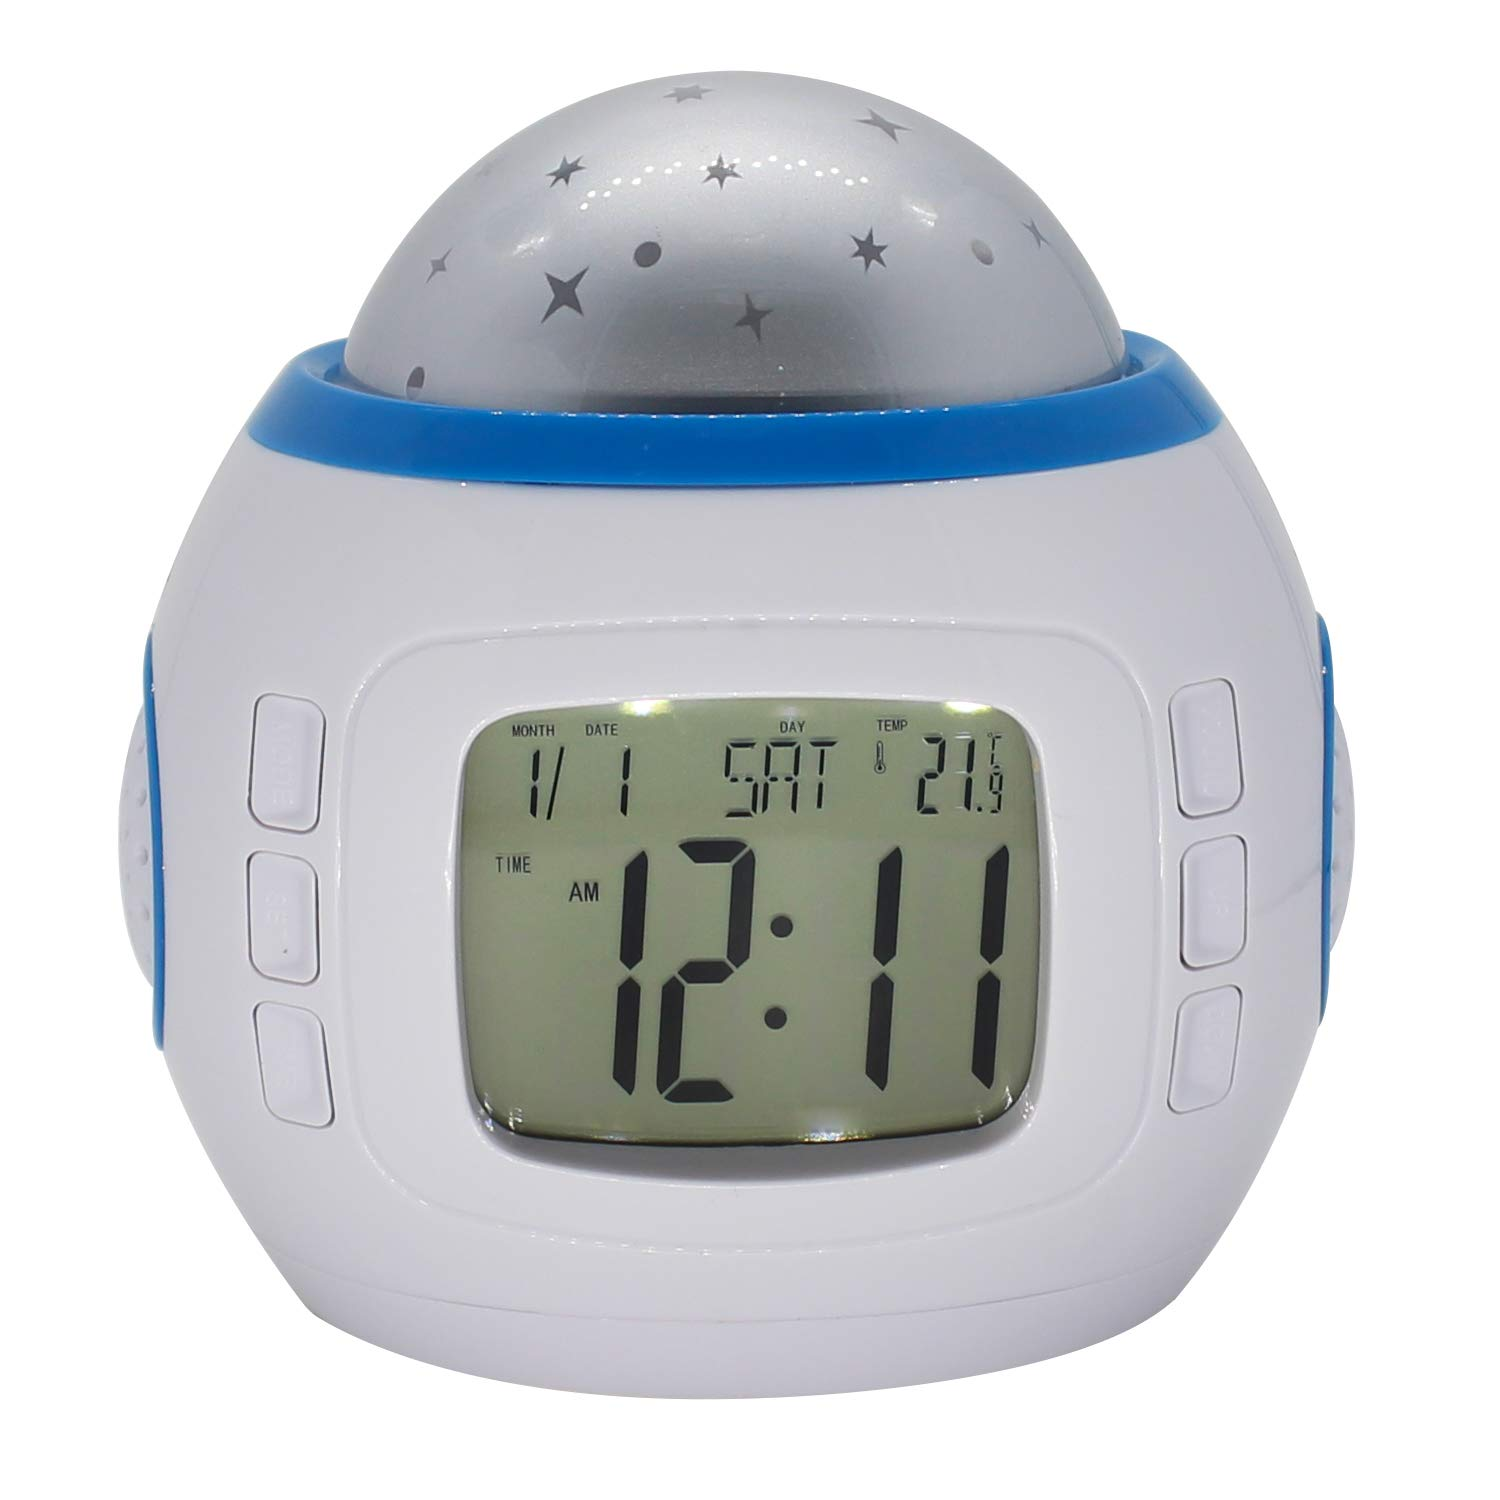 EURDIA Projection Alarm Clock Star Sky Music Home Travel Snooze Bedrooms with Electronic Digital Backlight 7 Colorful Bedside Clocks for Kids